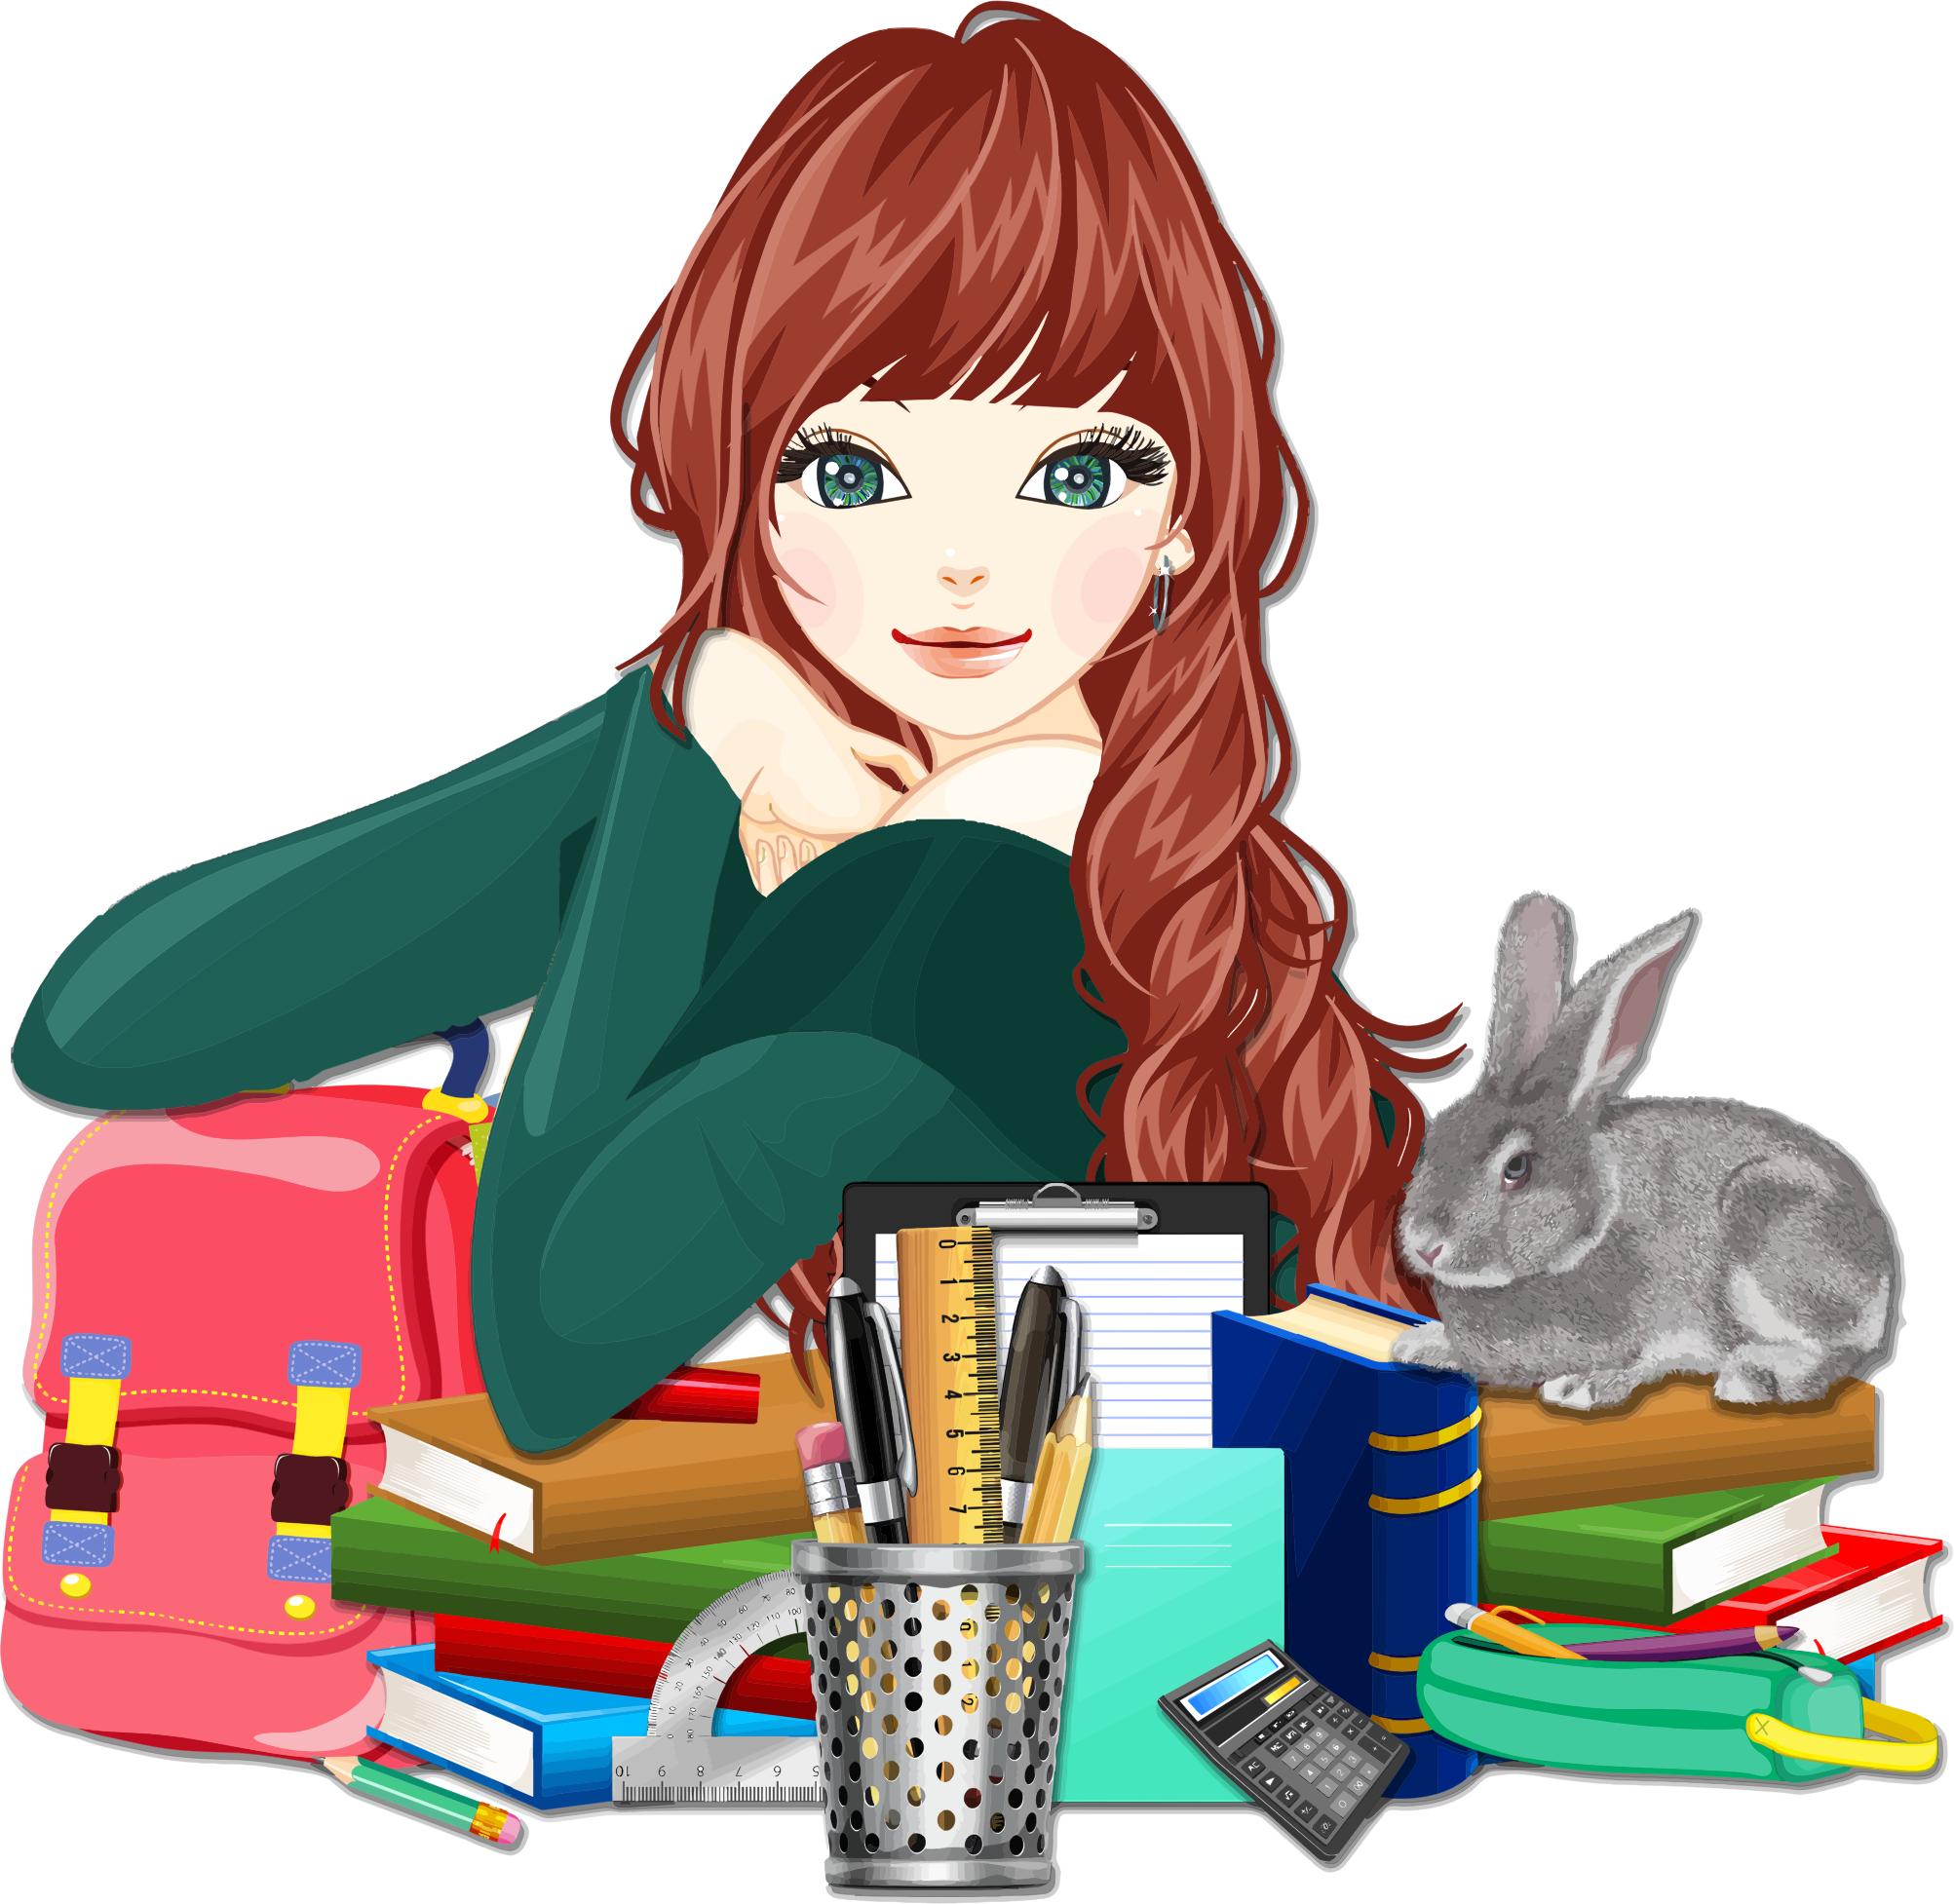 Girl getting ready for school clipart png free stock Clipart - School Girl With Rabbit 2 png free stock